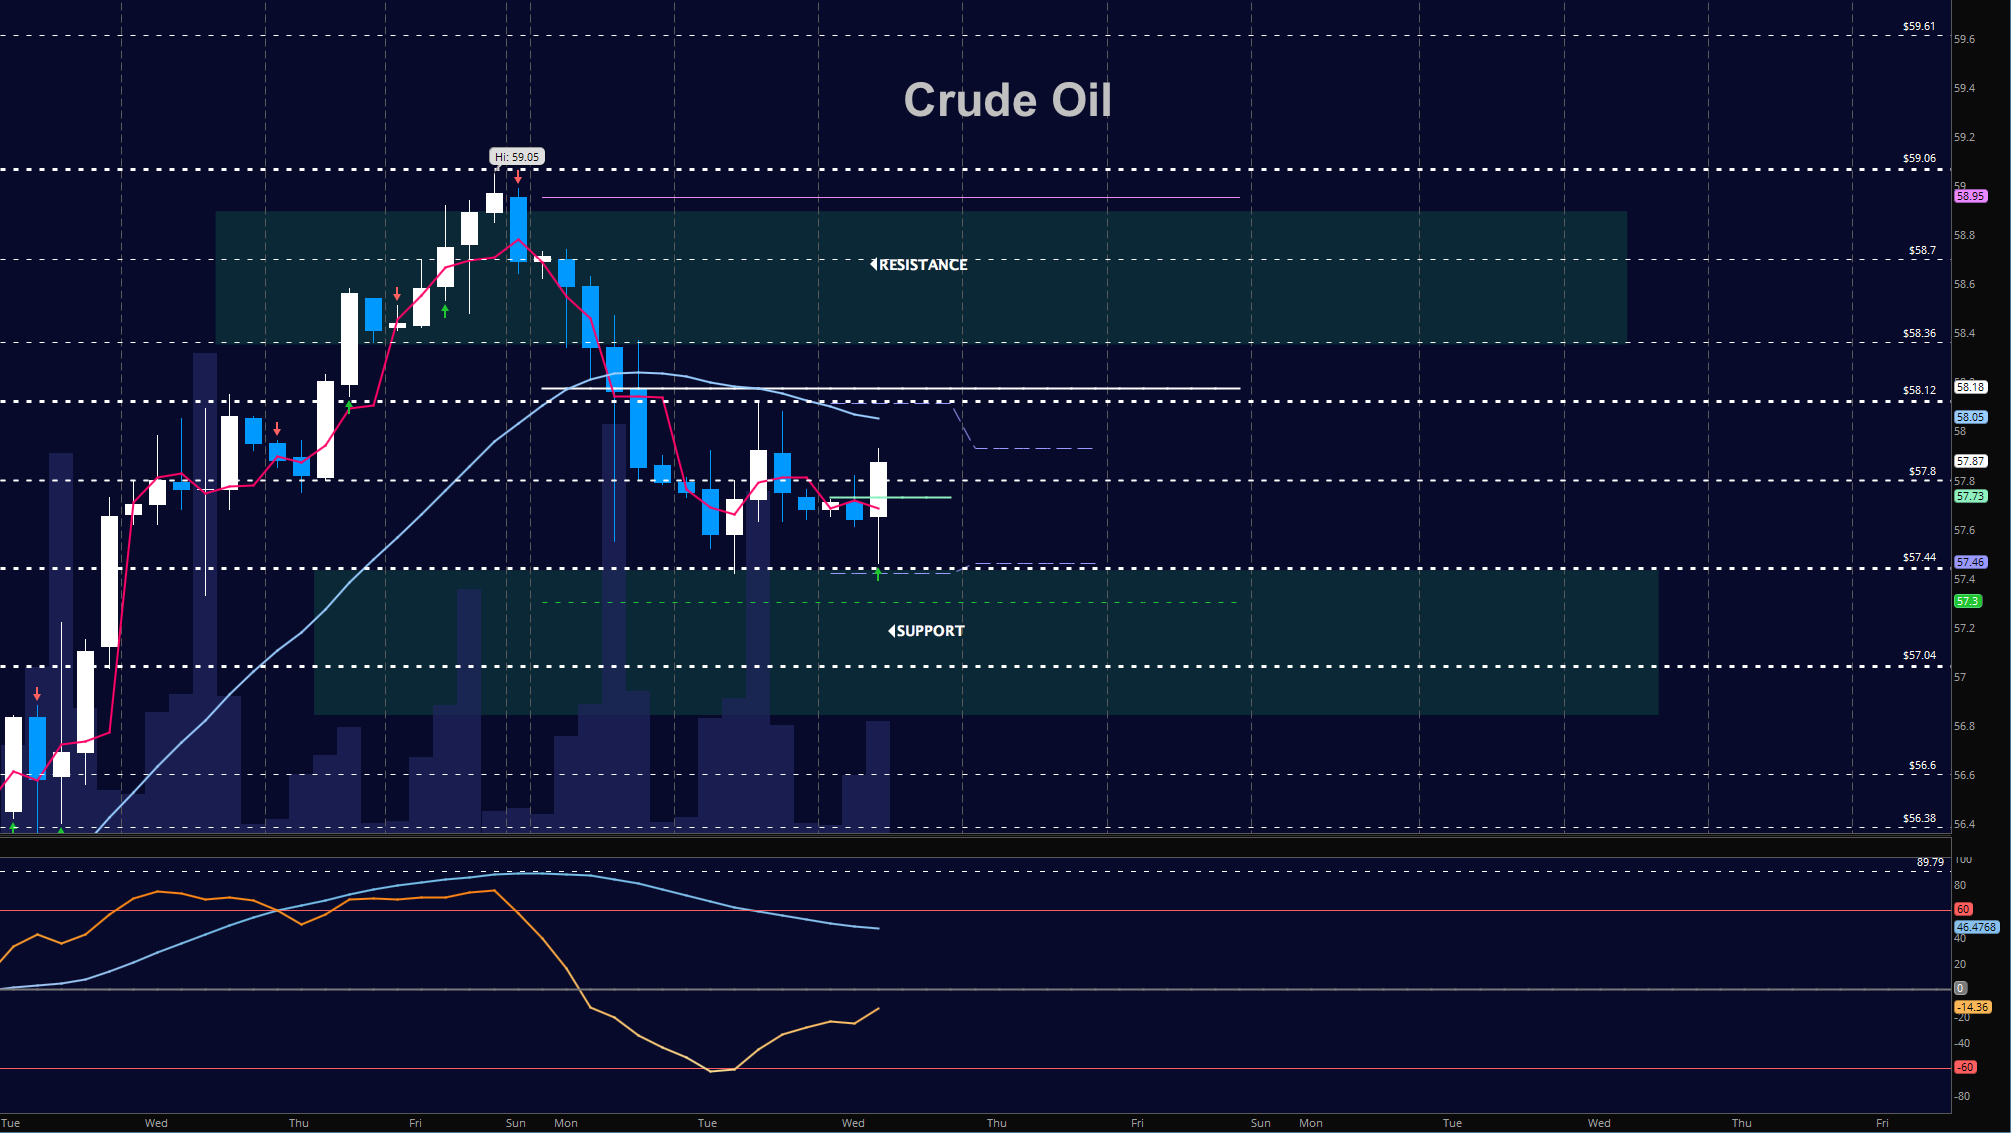 wti crude oil prices trading update_news_chart_november 29_investing_markets